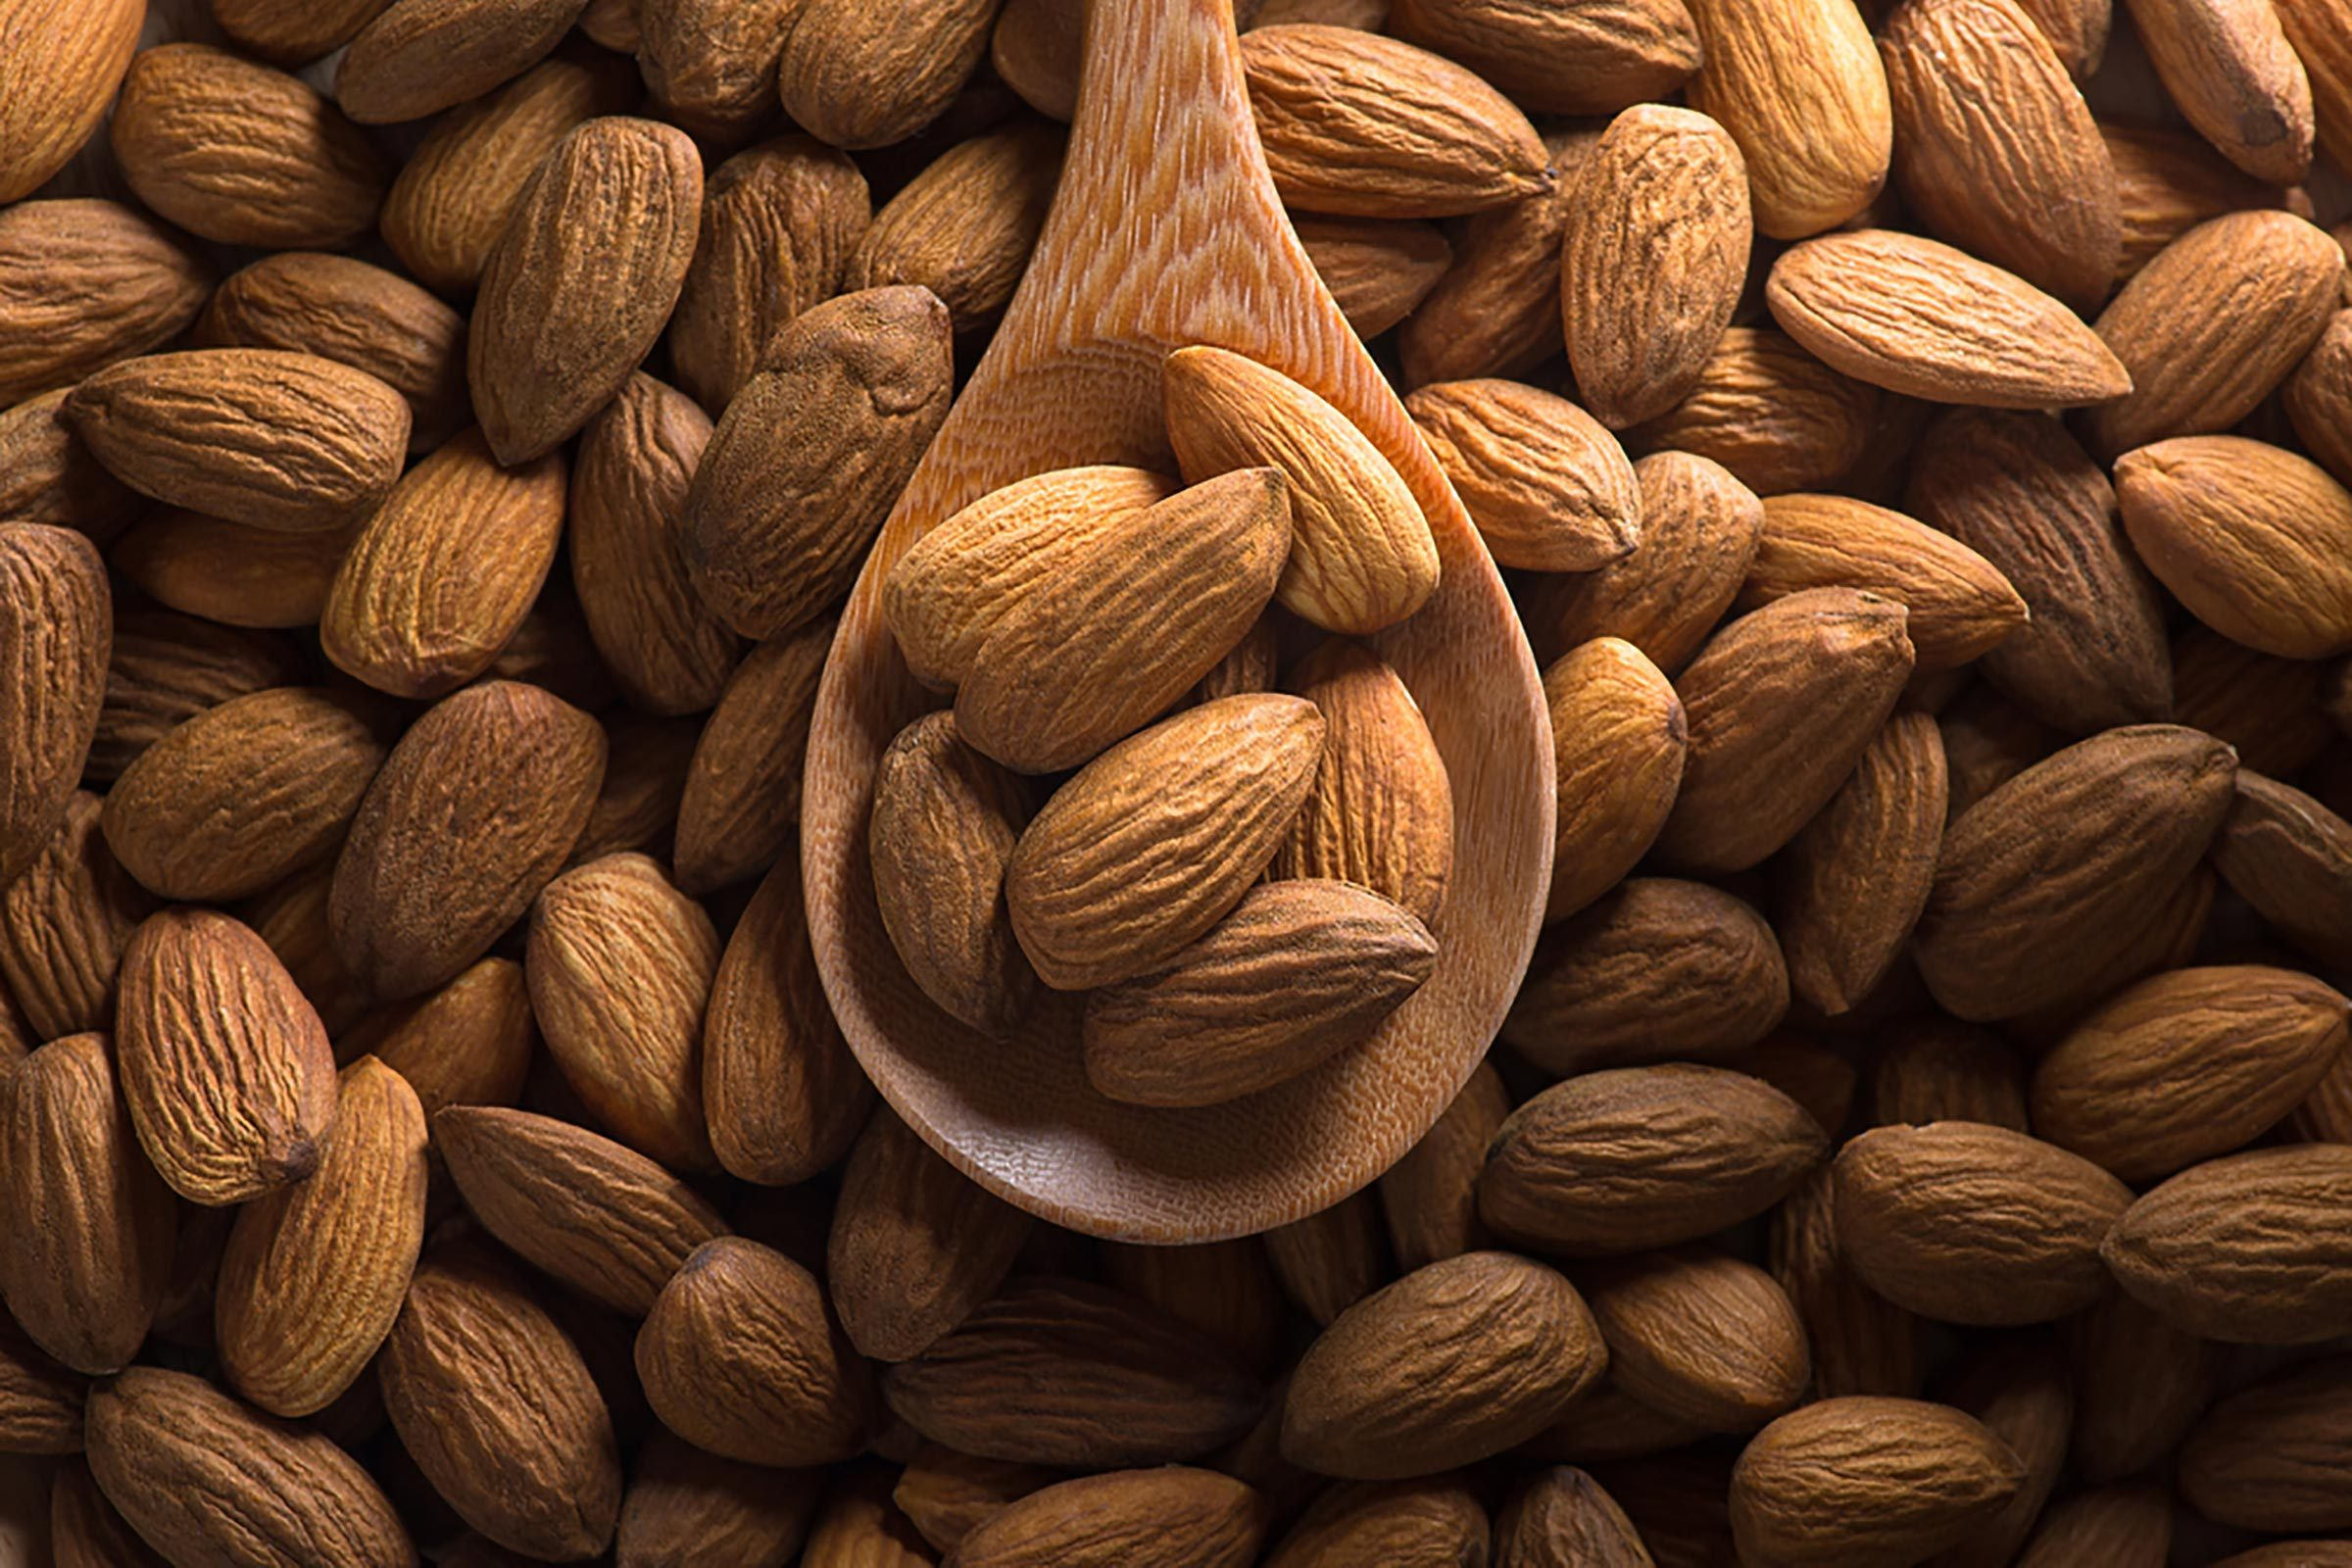 How Healthy are Almonds?